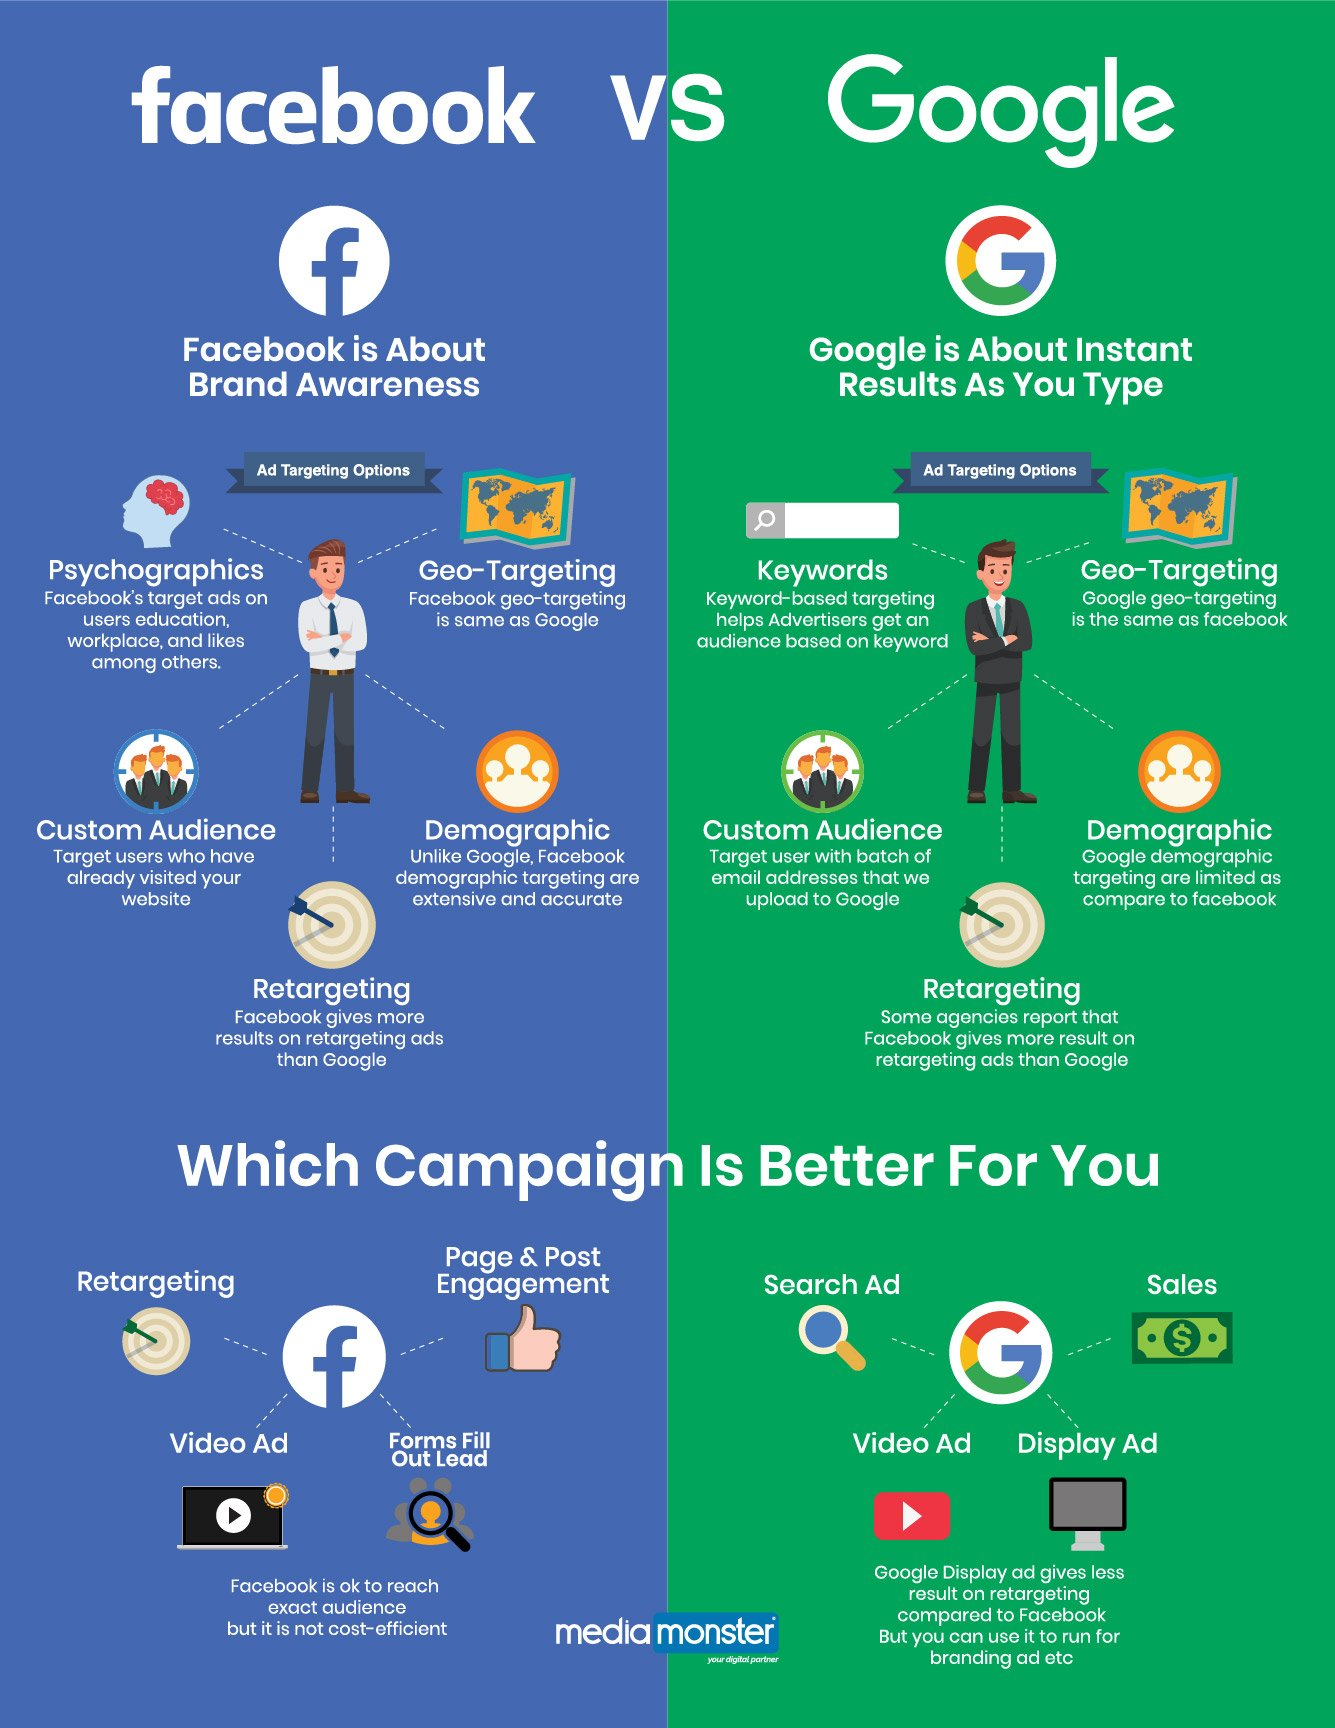 ppc-agency-los-angeles-pay-per-click-marketing-facebook-vs-google